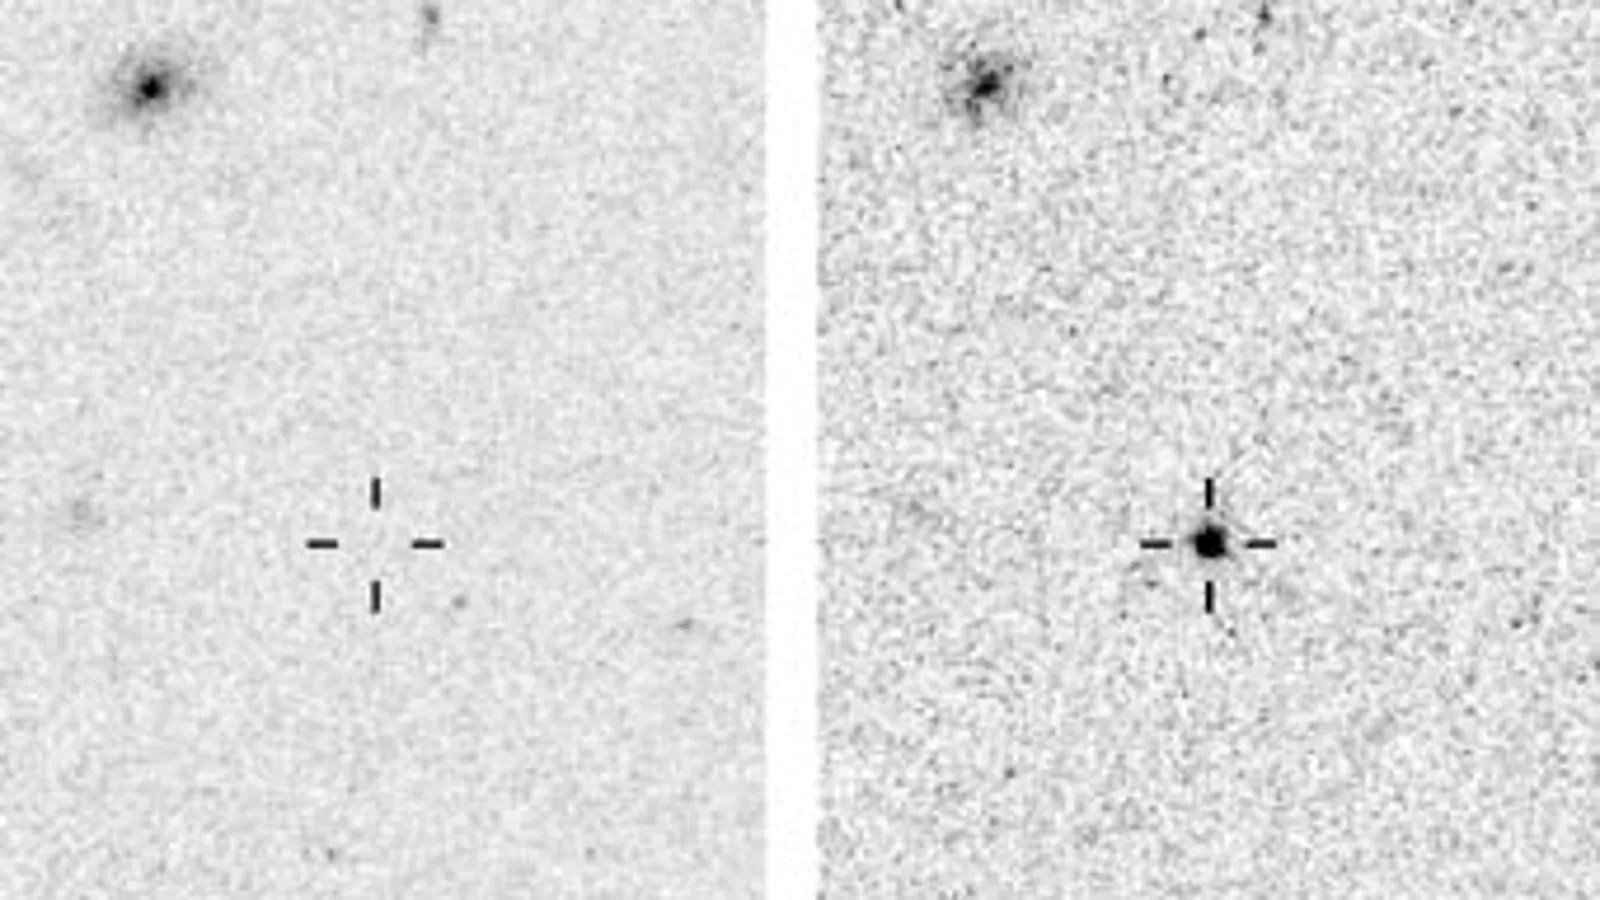 Hubble Finds Unidentified Object in Space, Scientists Puzzled